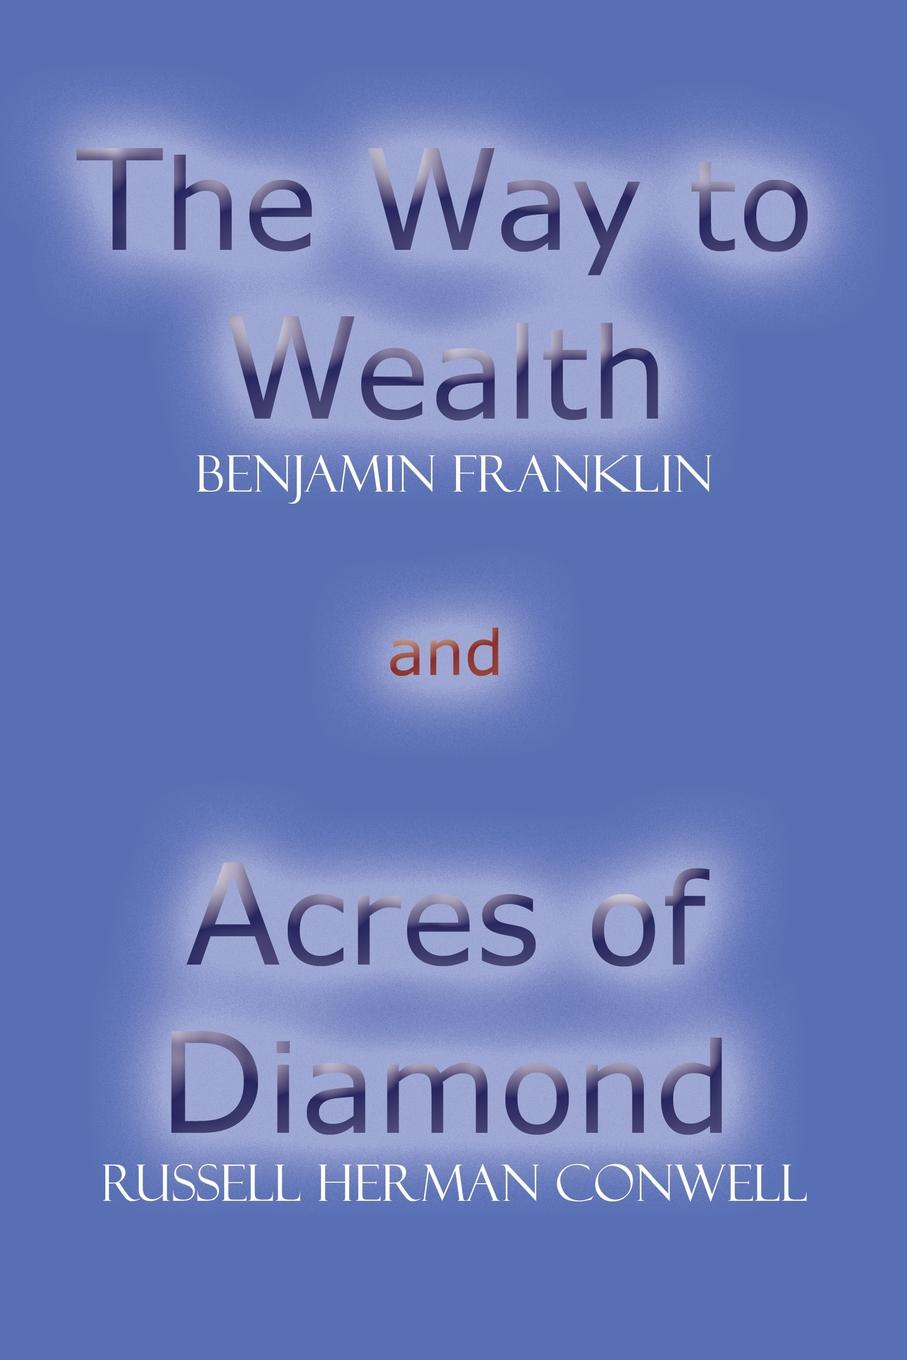 Benjamin Franklin, Russell Herman Conwell The Way to Wealth and Acres of Diamond robert j burdette the modern temple and templars a sketch of the life and work of russell h conwell pastor at the baptist temple philadelphia